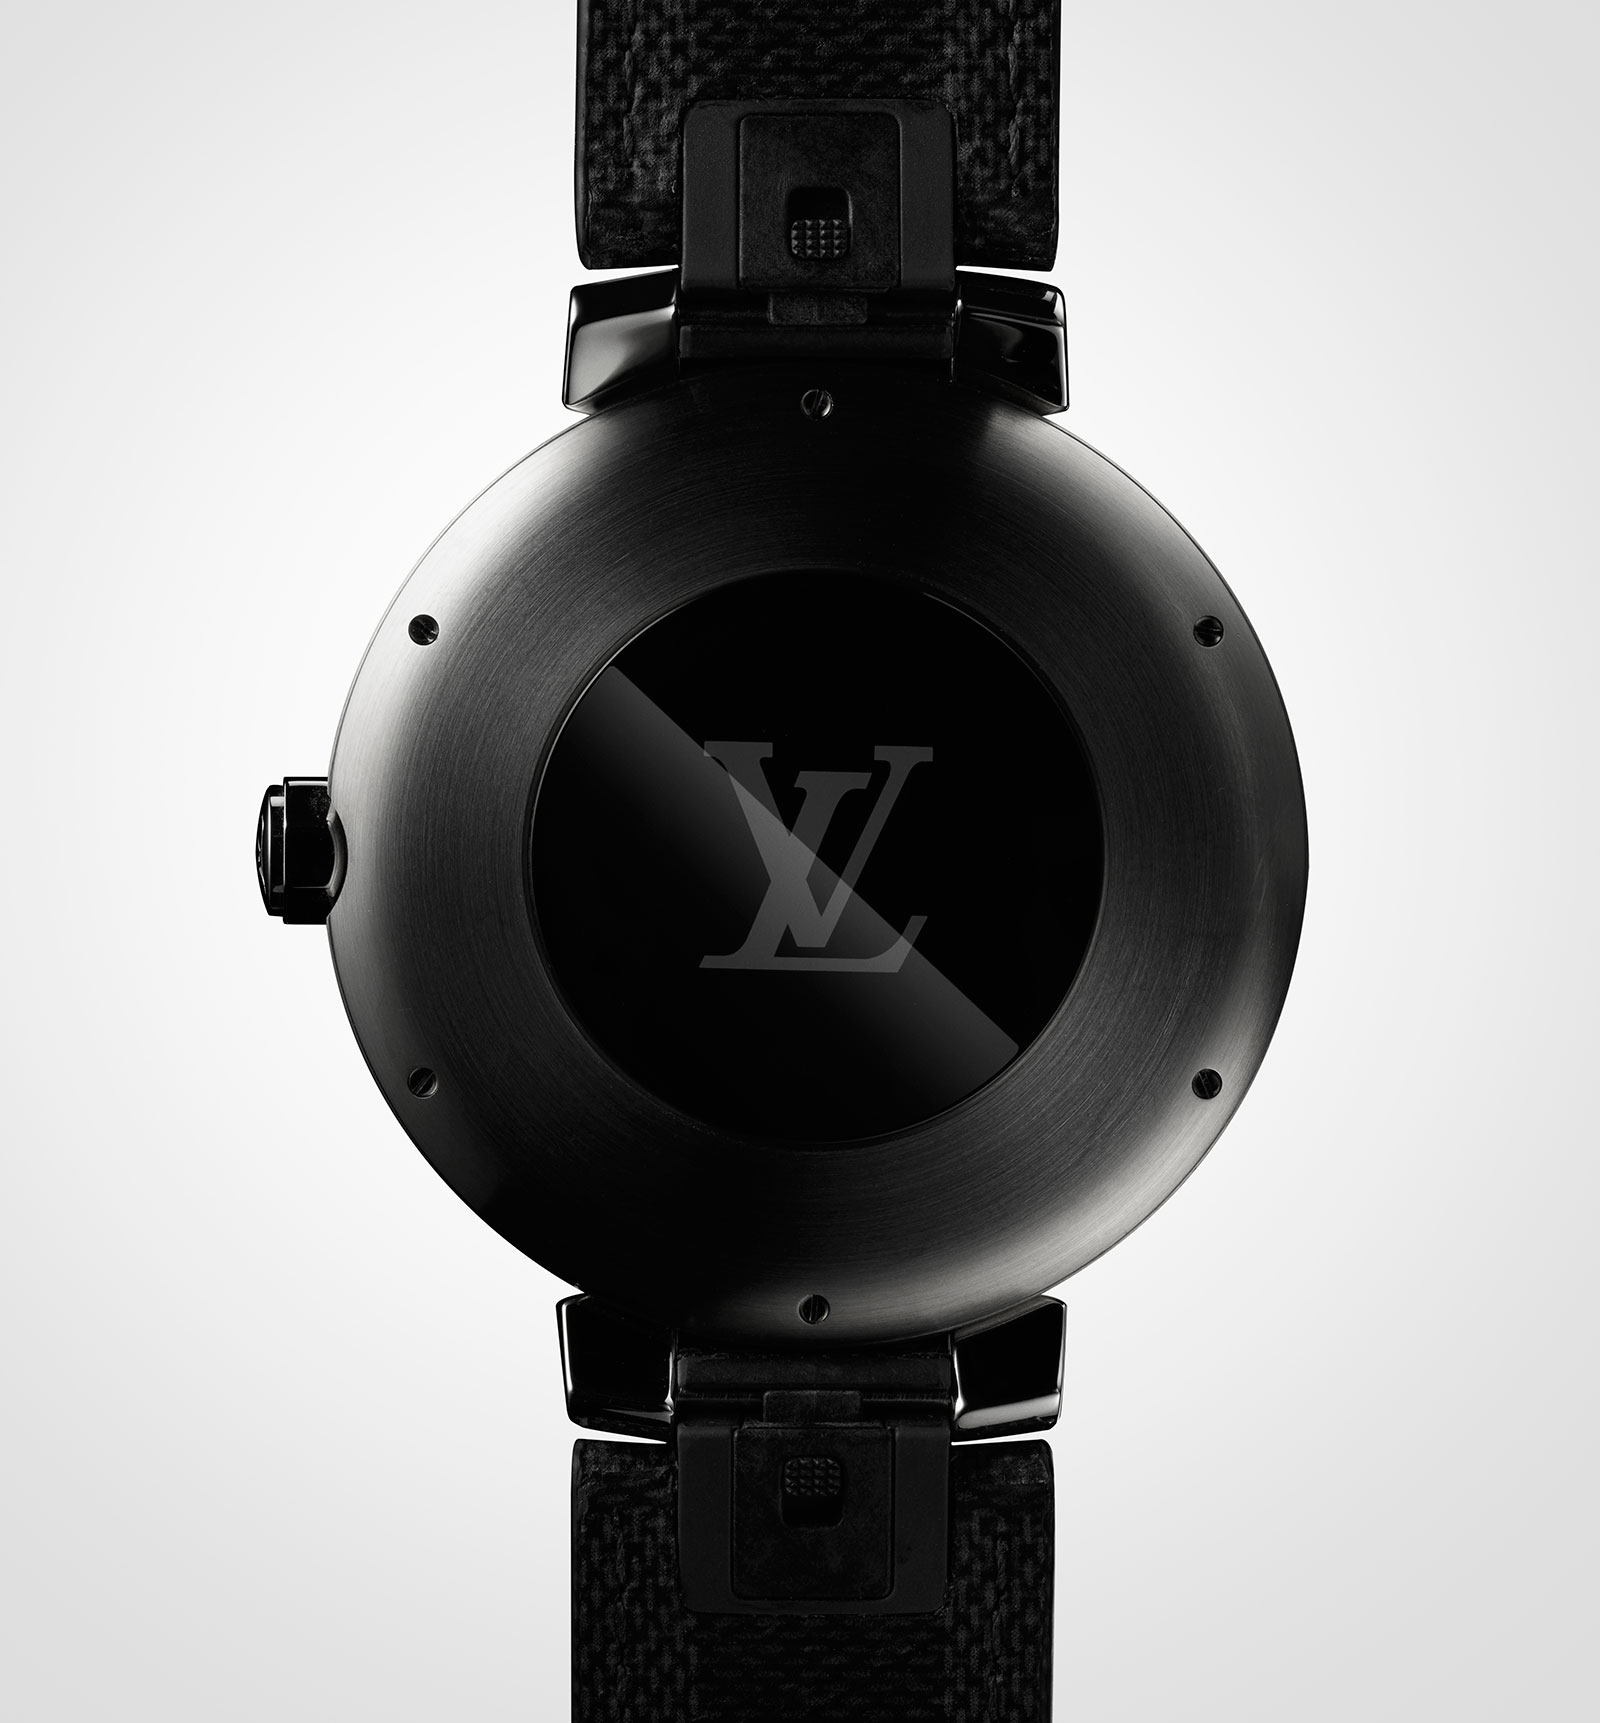 Louis-Vuitton-Tambour-Horizon-Smartwatch-3.jpg